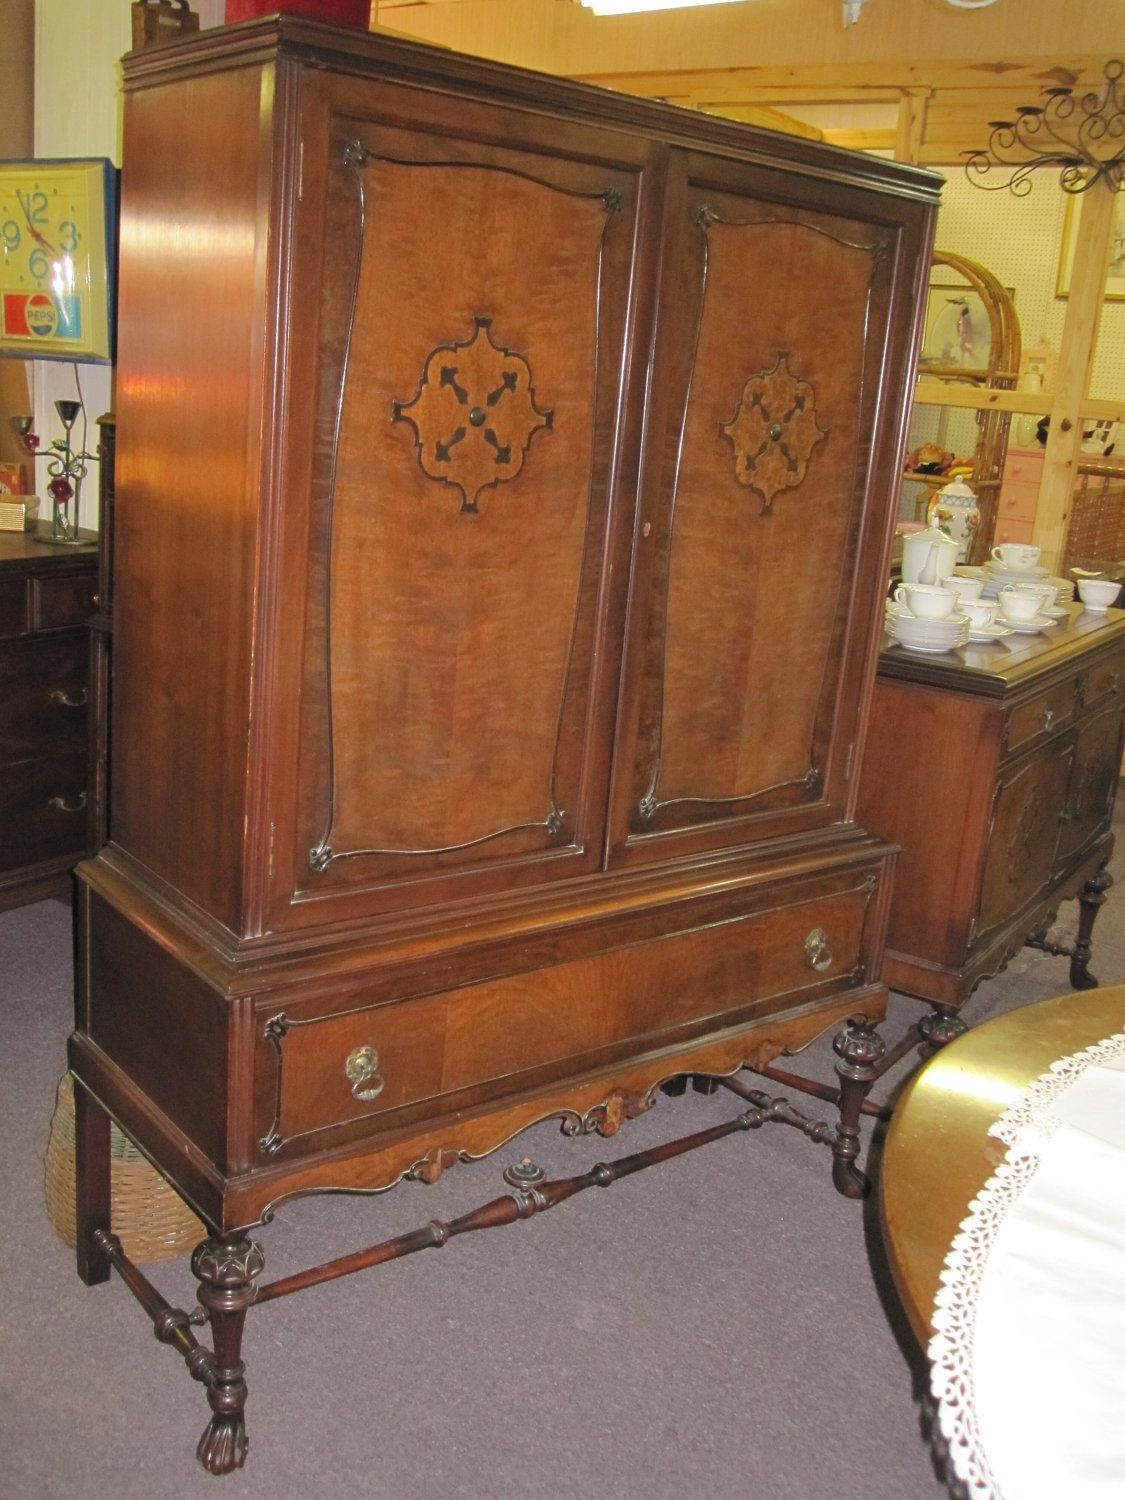 Items similar to Antique Hutch on Stand by the Lammert Furniture Company,  St. Louis, MO on Etsy - Antique Hutch On Stand By The Lammert Furniture Company, St. Louis